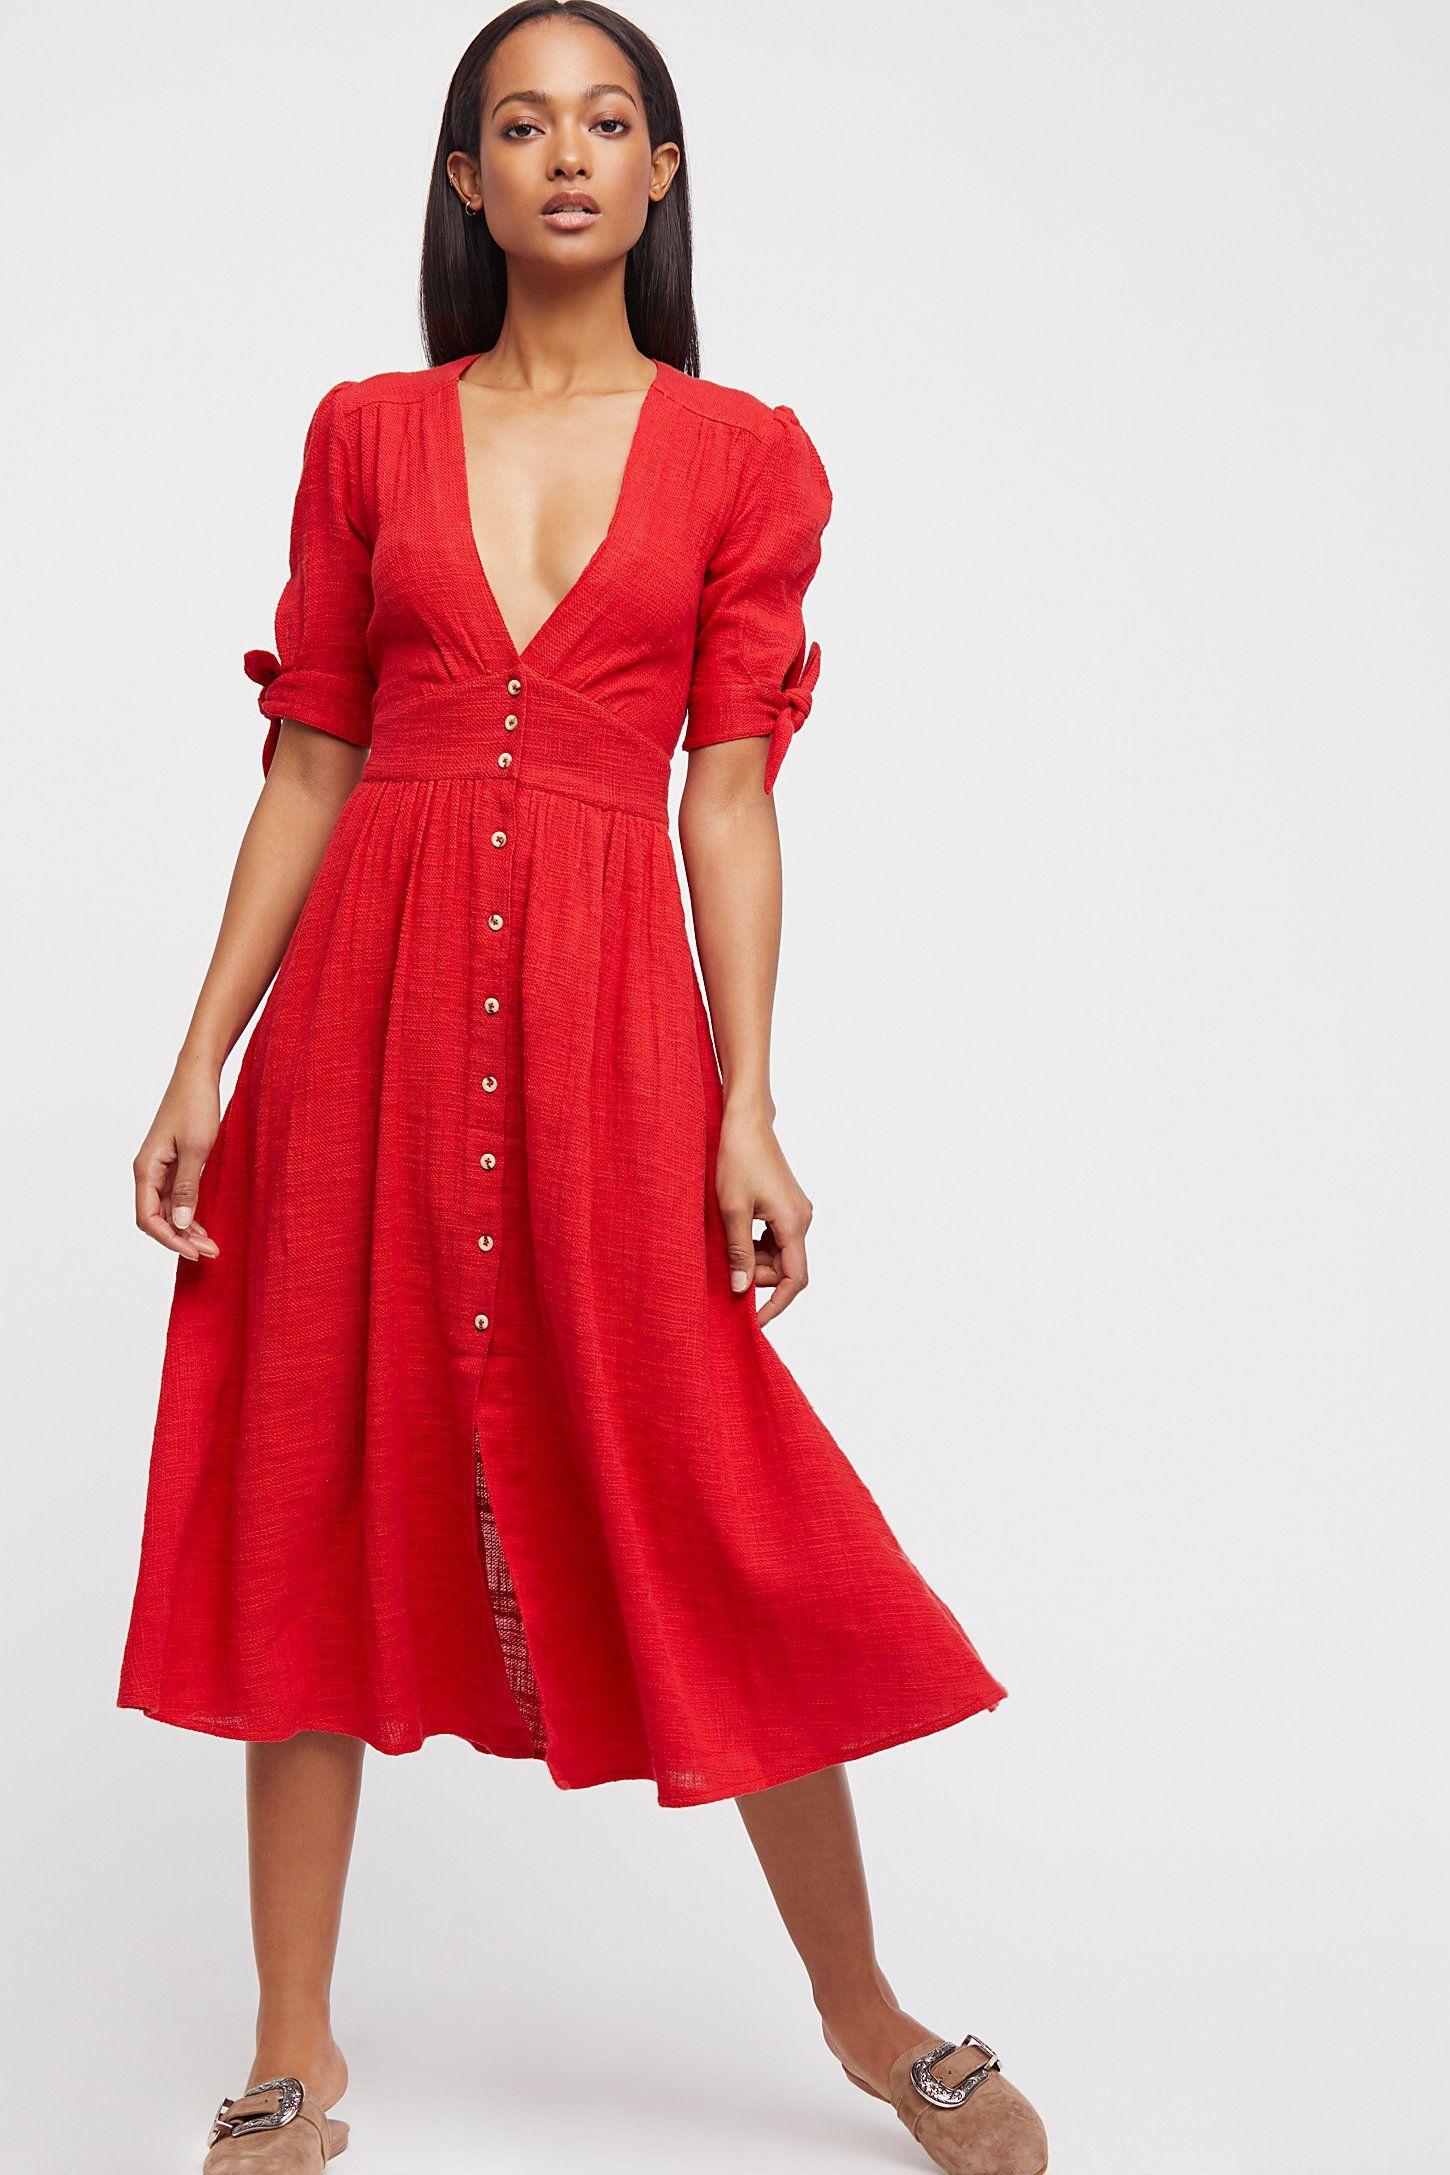 2142cbf3263 Shop our Love Of My Life Midi Dress at FreePeople.com. Share style pics  with FP Me